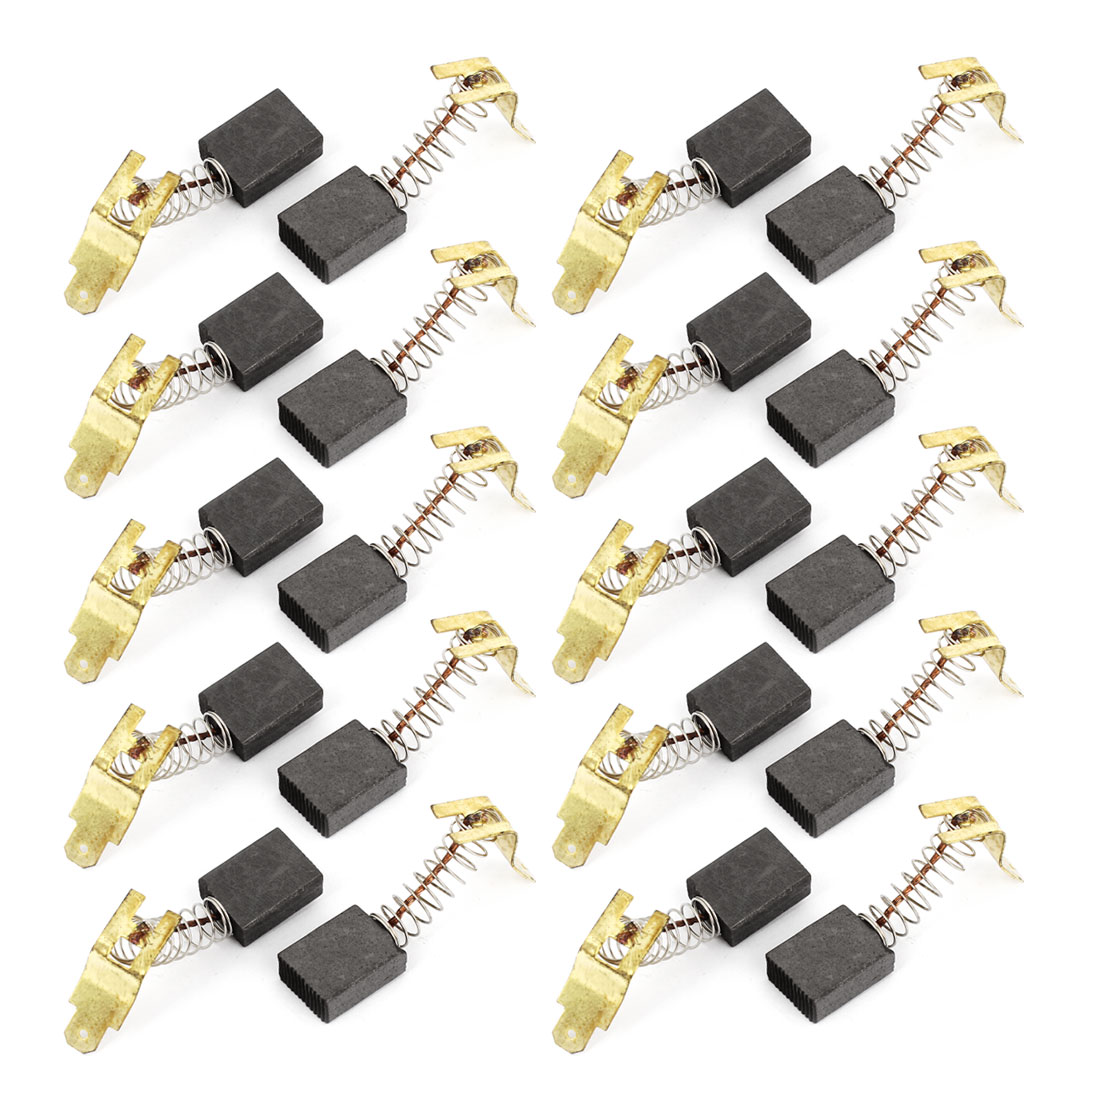 20 Pcs Spare Part Spring Type Electric Drill Motor 18mm x 13mm x 6mm Carbon Brushes